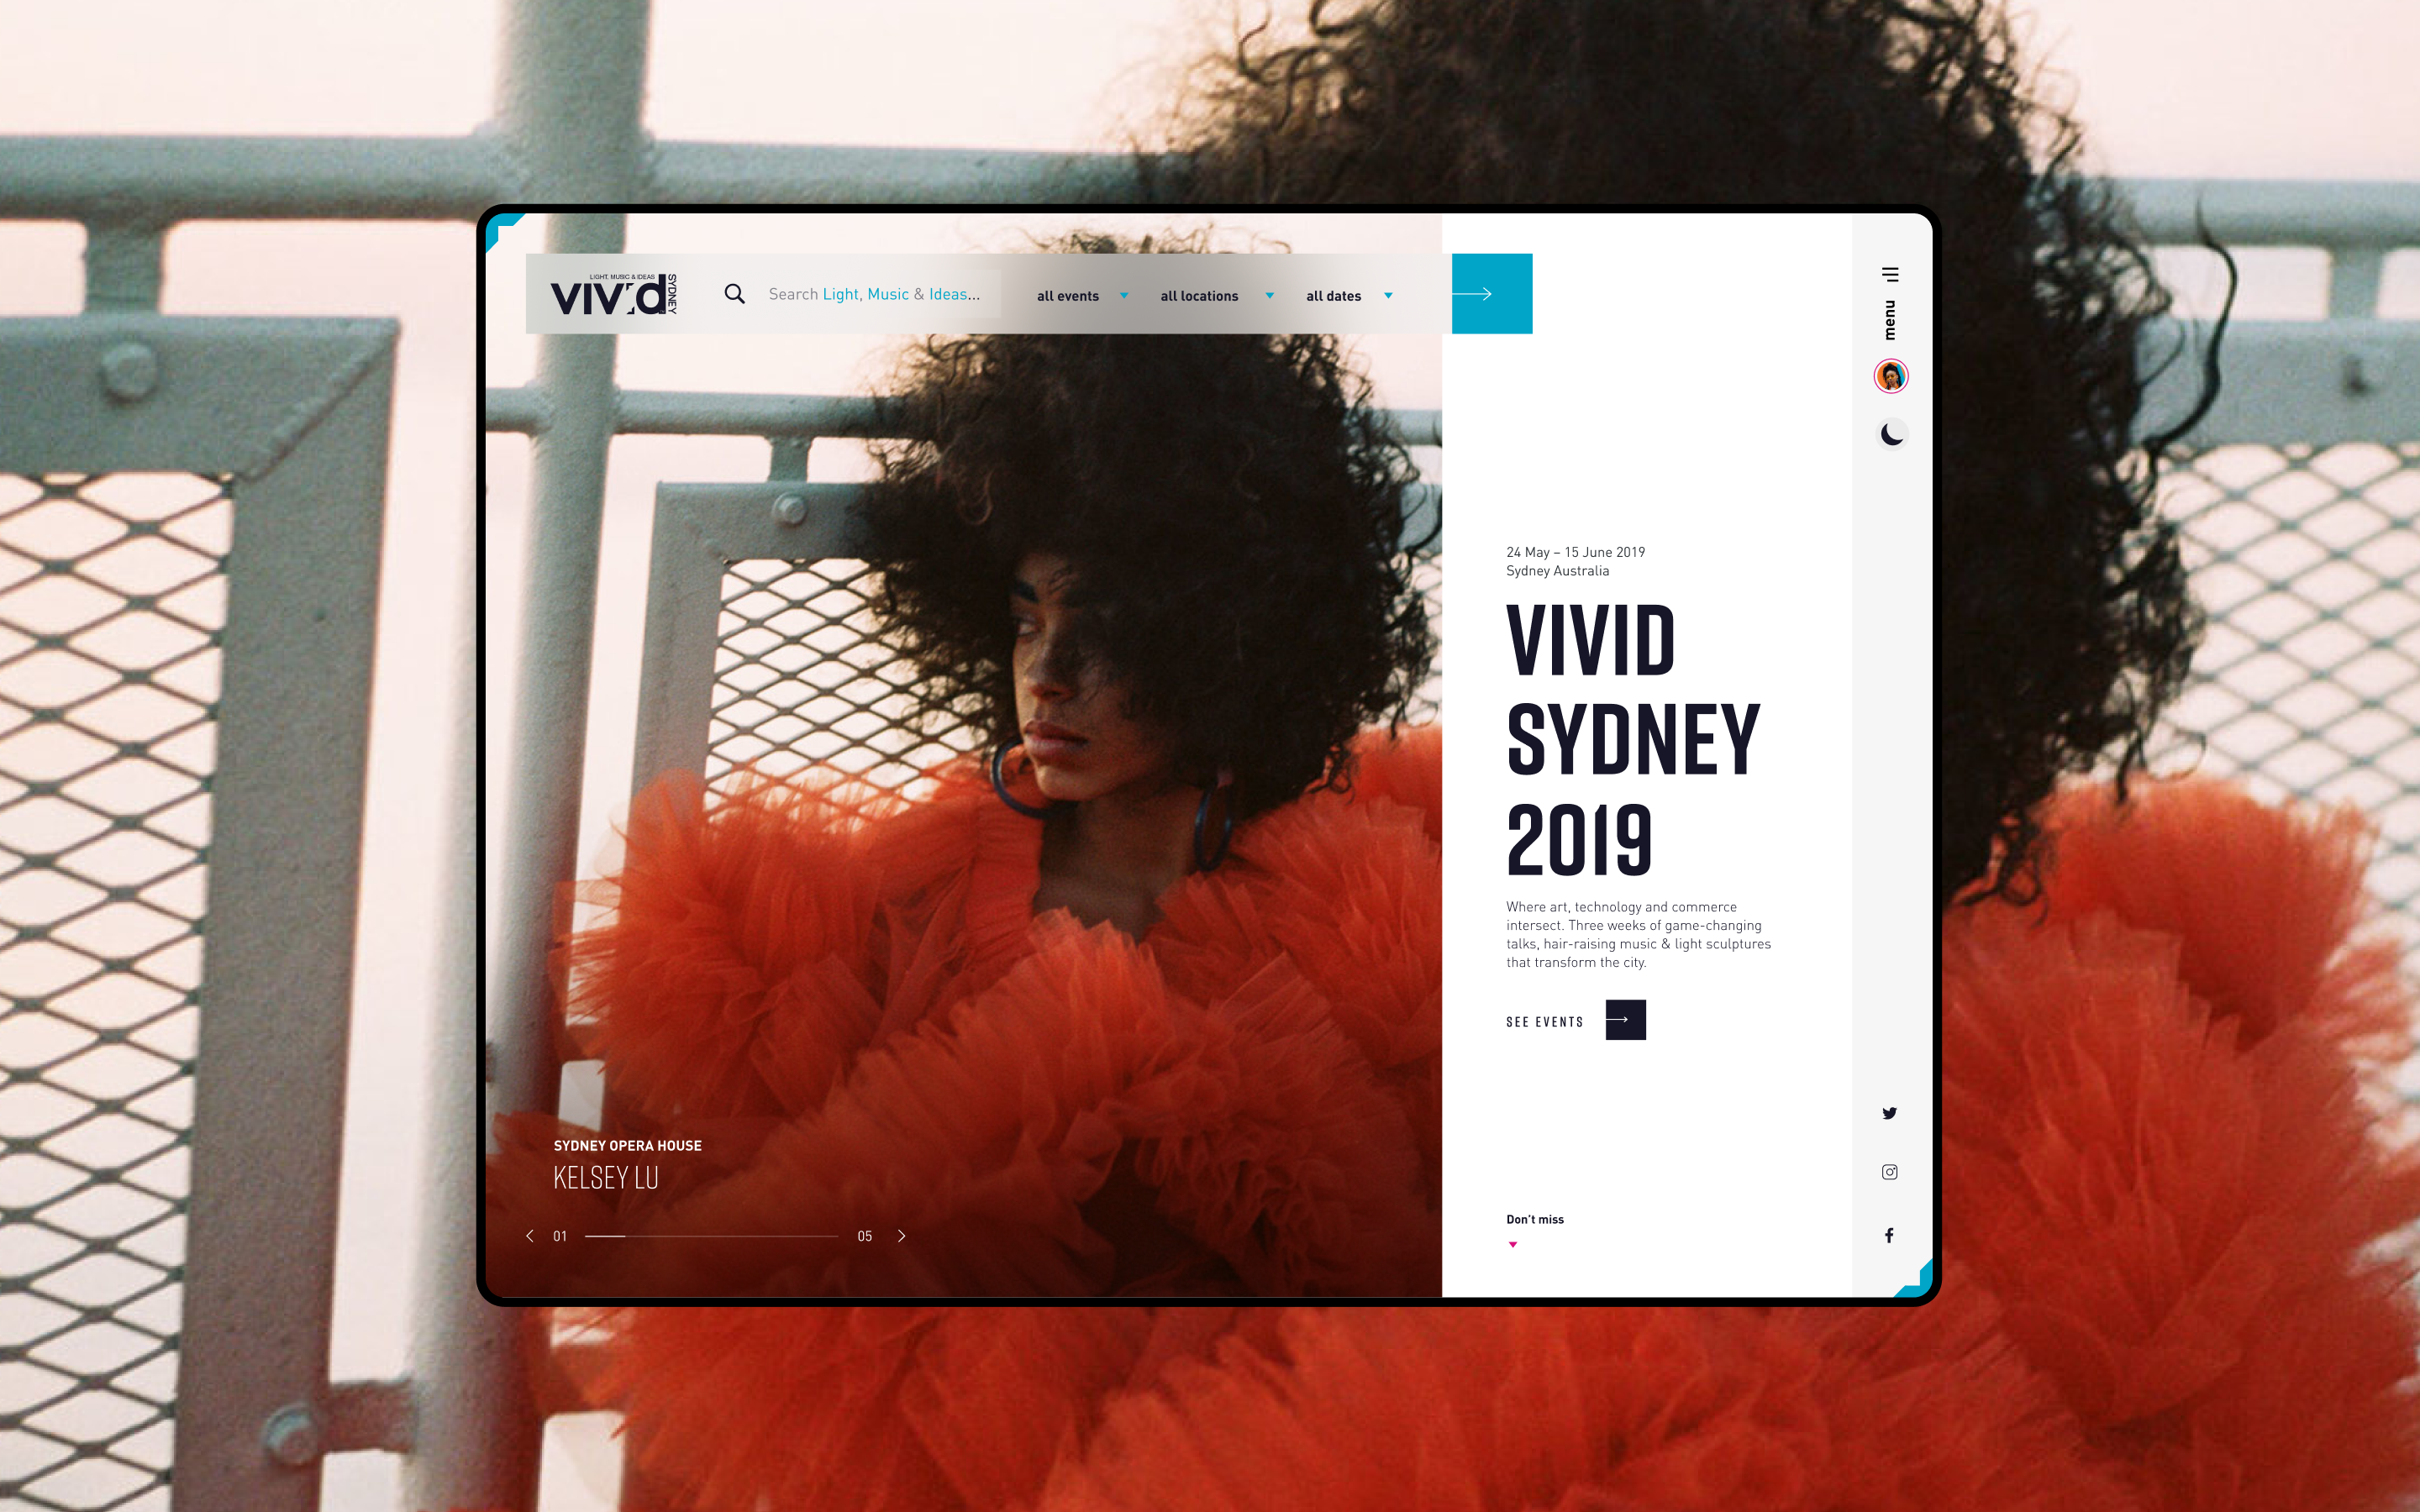 Vivid Sydney website homepage hero, overlaid on top of an image of a girl